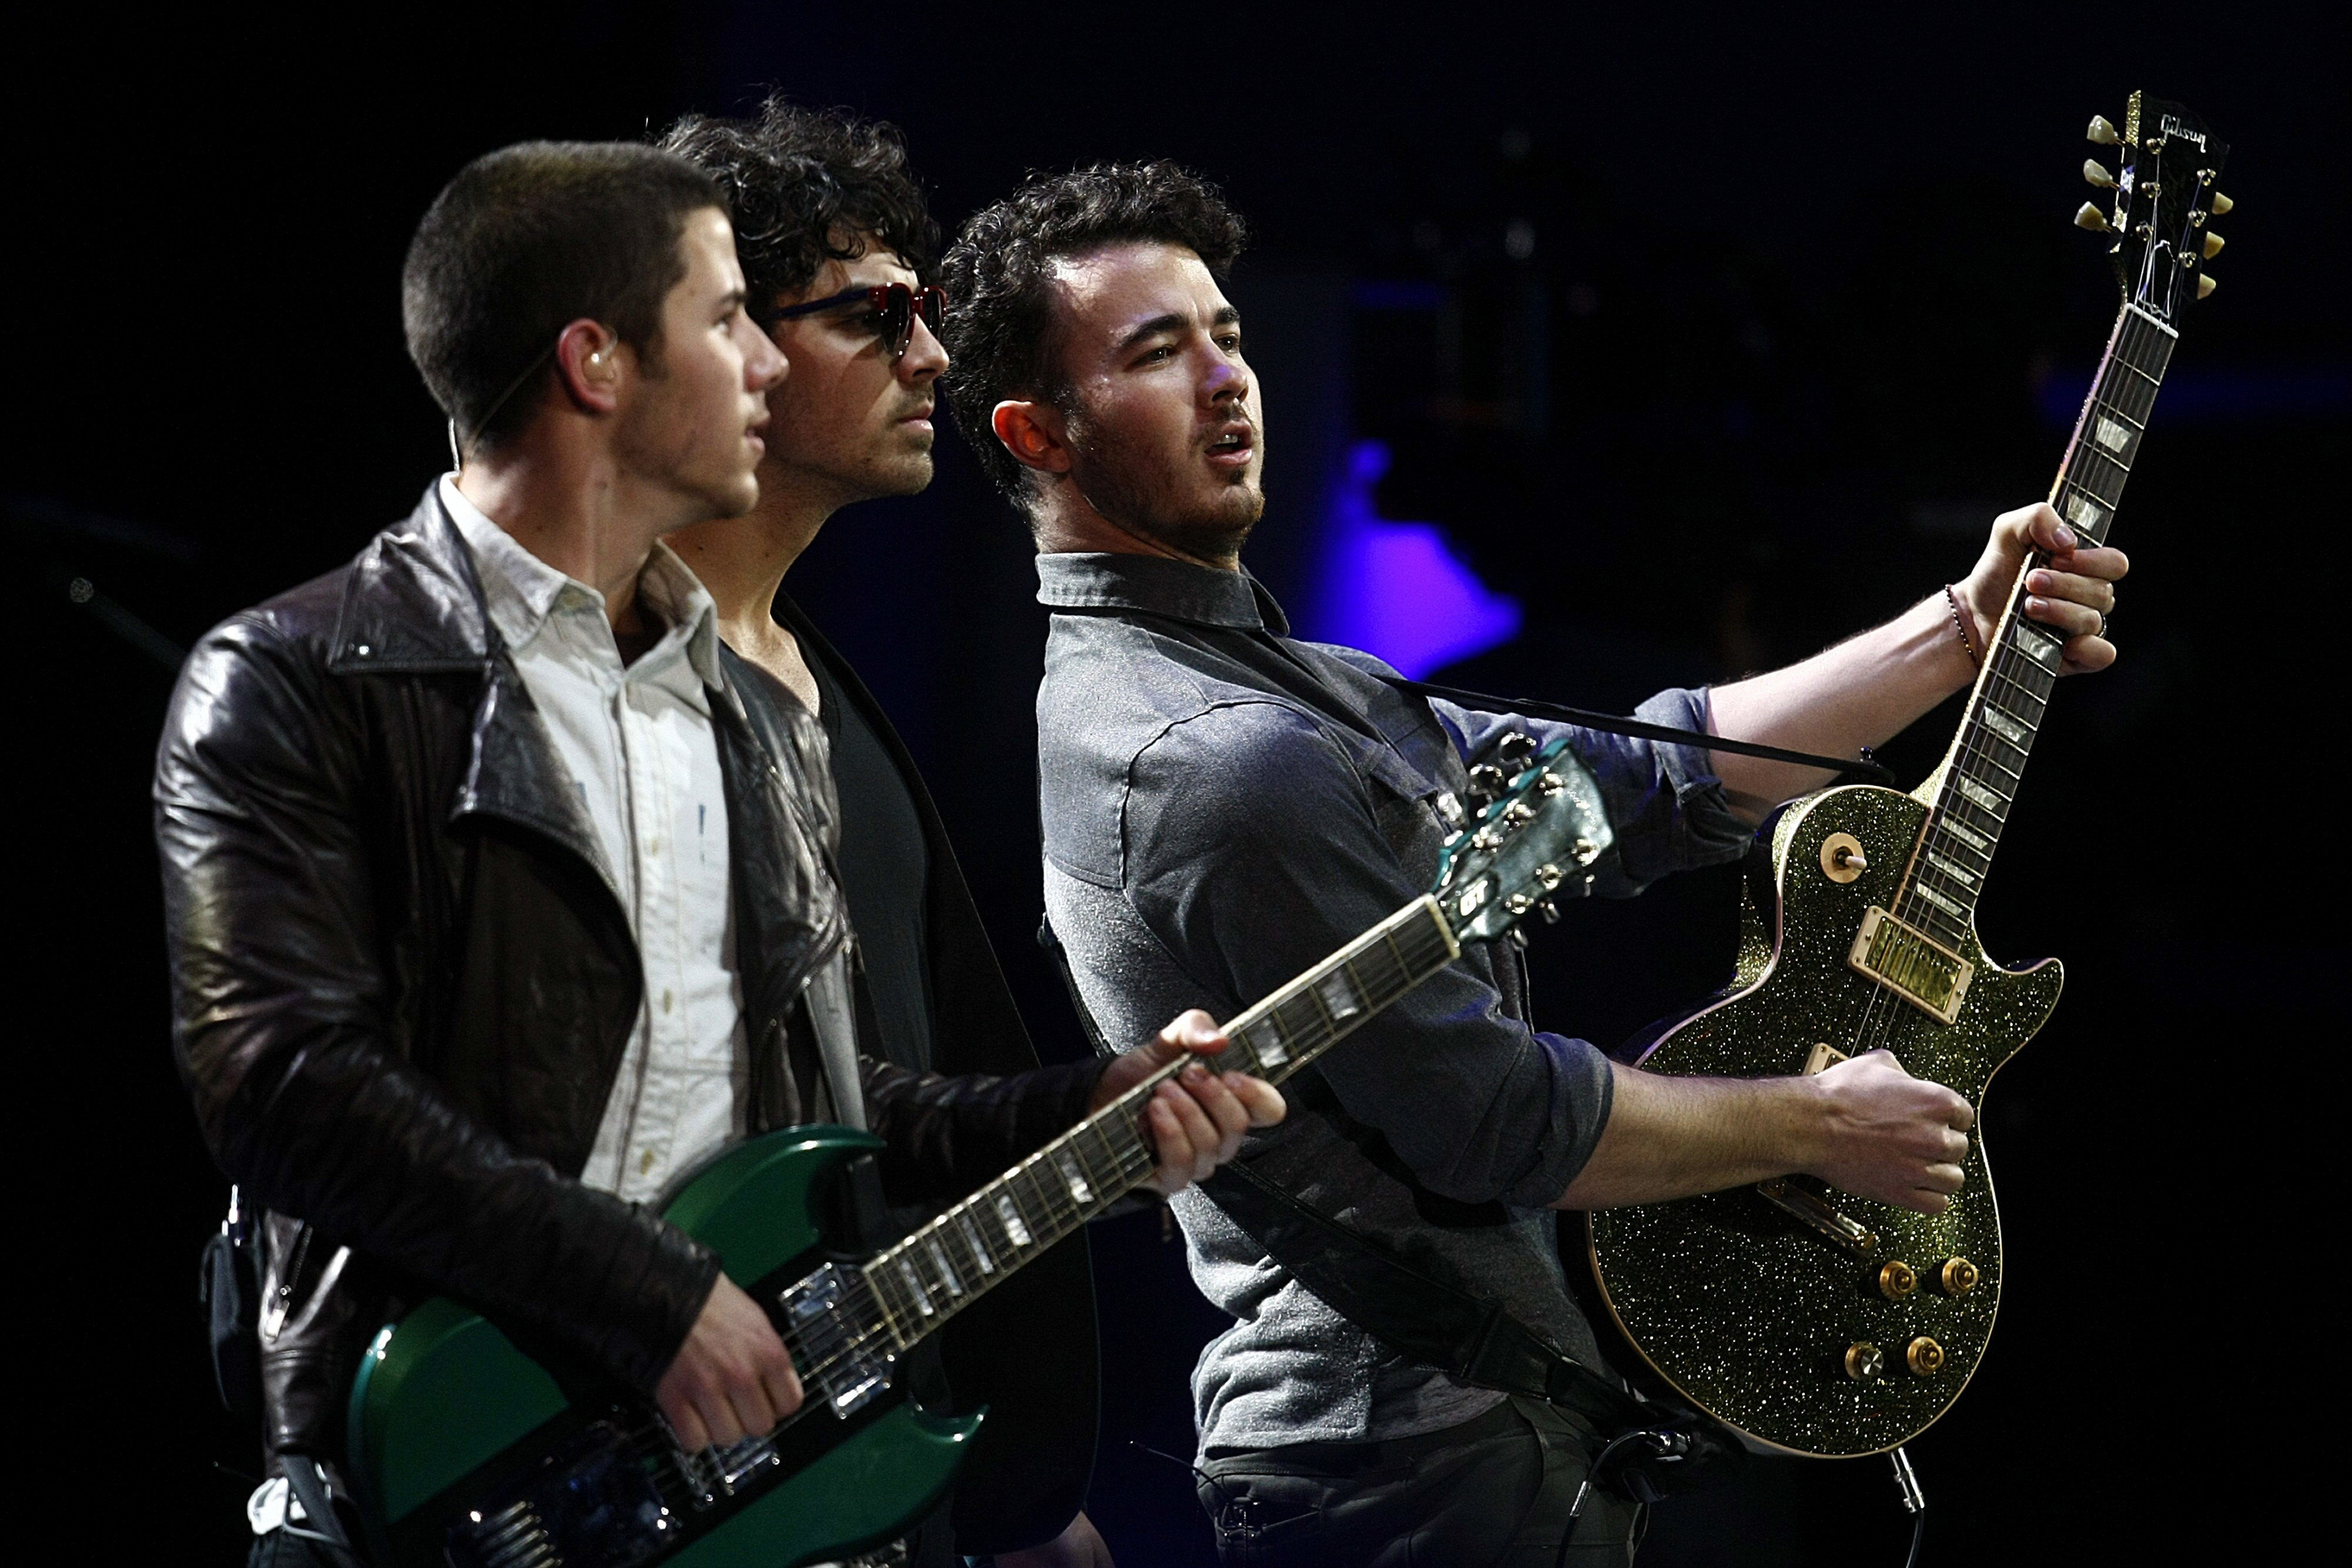 The Jonas Brothers perform at the International Vina Del Mar Music Festival at Vina Del Mar in Chile on Feb. 26, 2013.